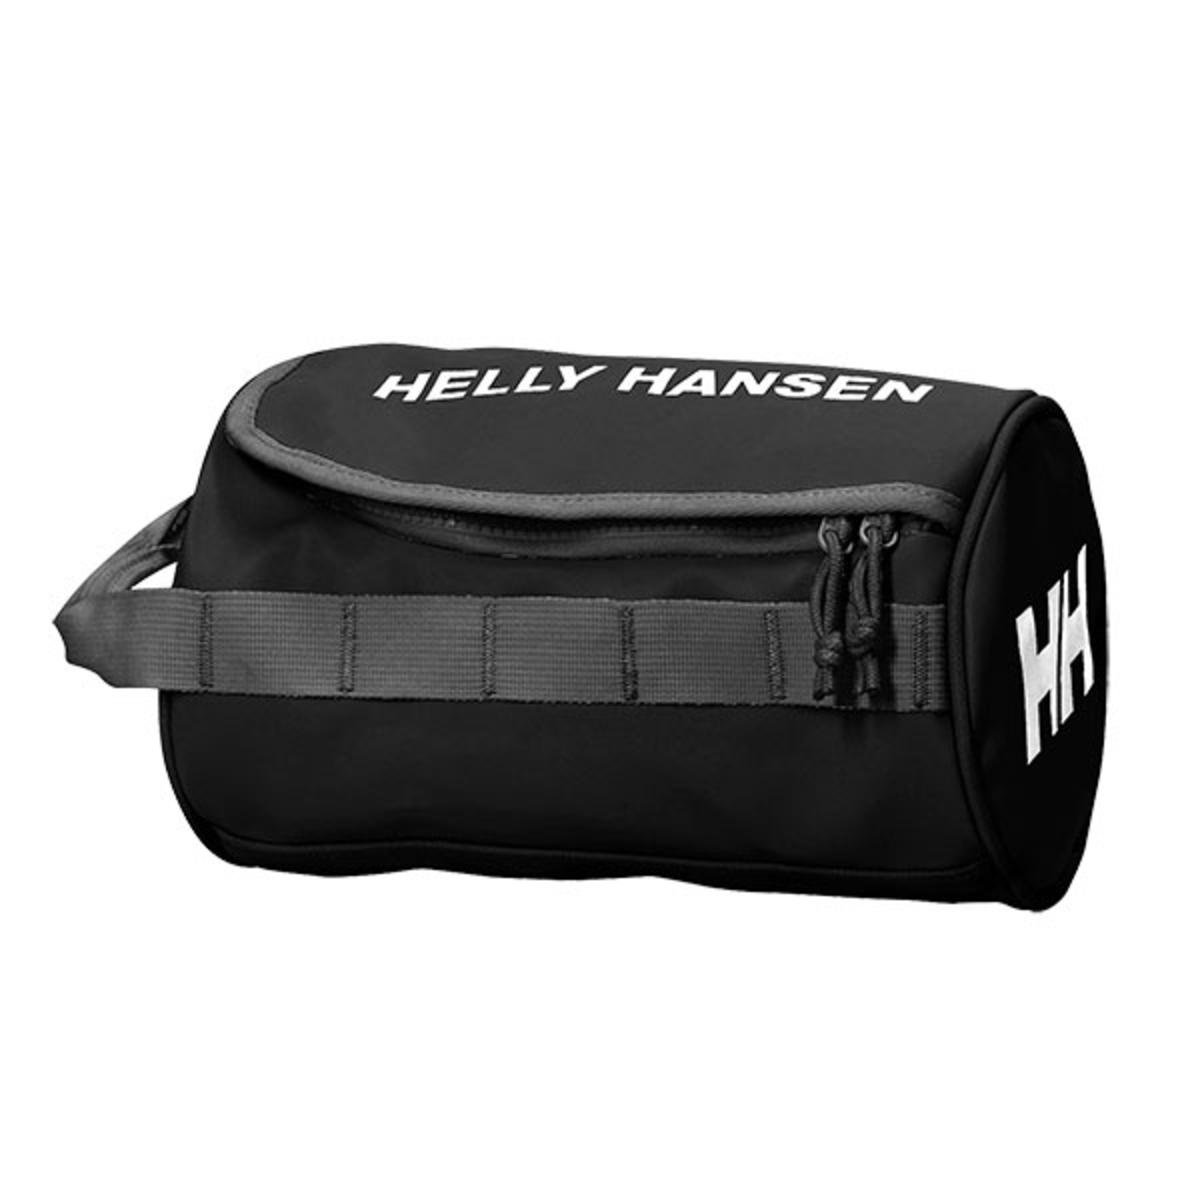 7be37236d5d Helly Hansen Wash Bag 2 - The Warming Store